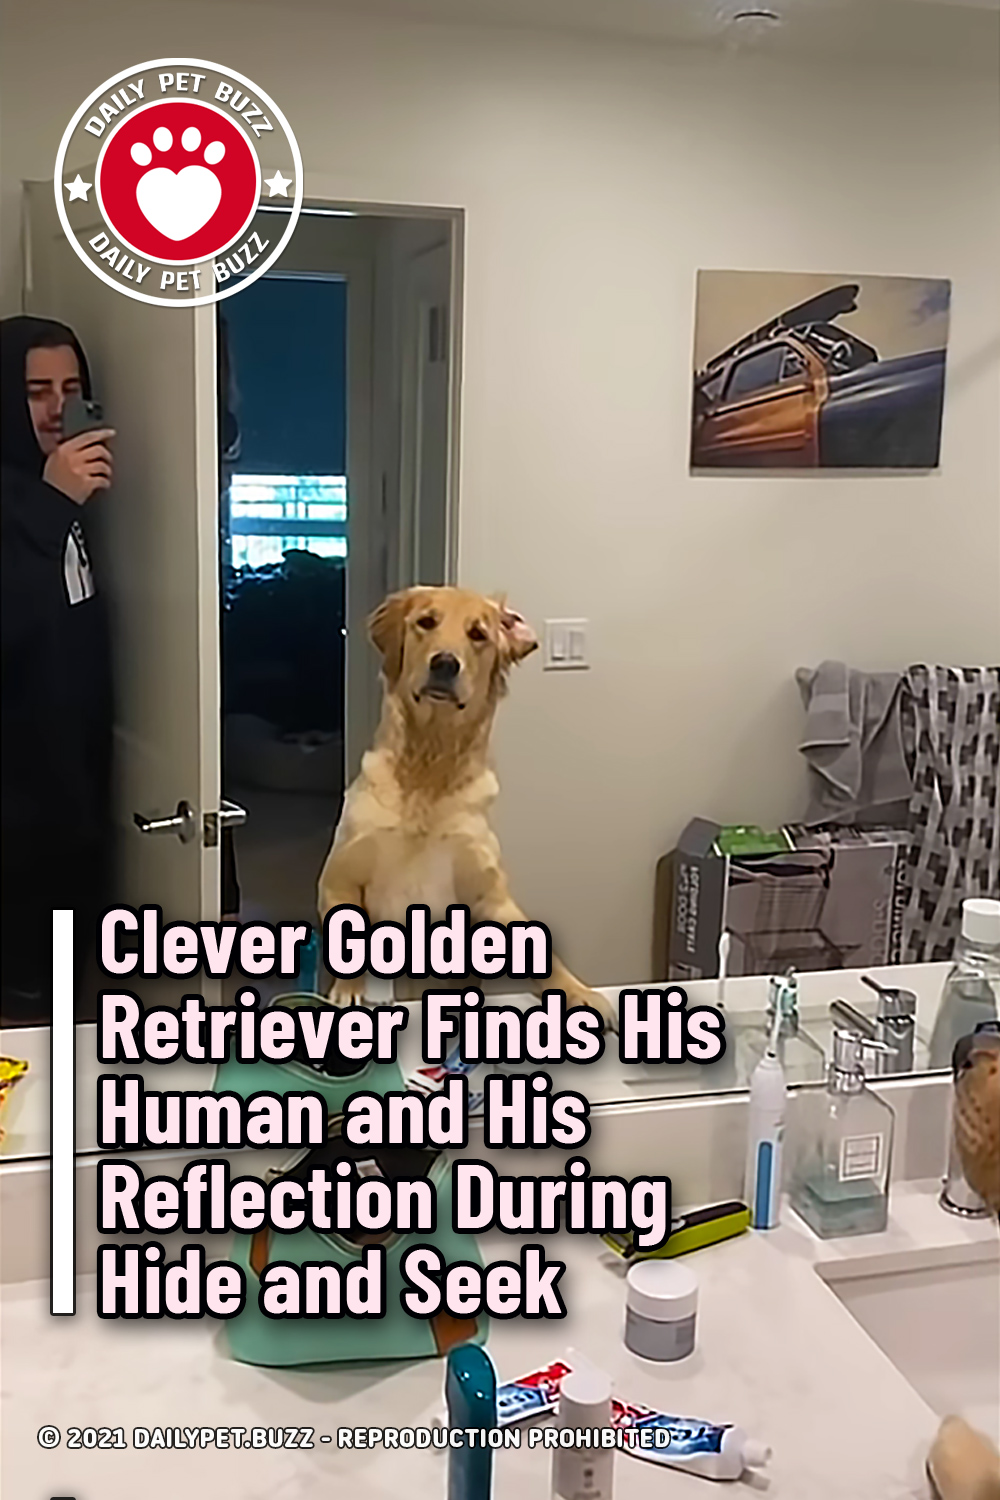 Clever Golden Retriever Finds His Human and His Reflection During Hide and Seek